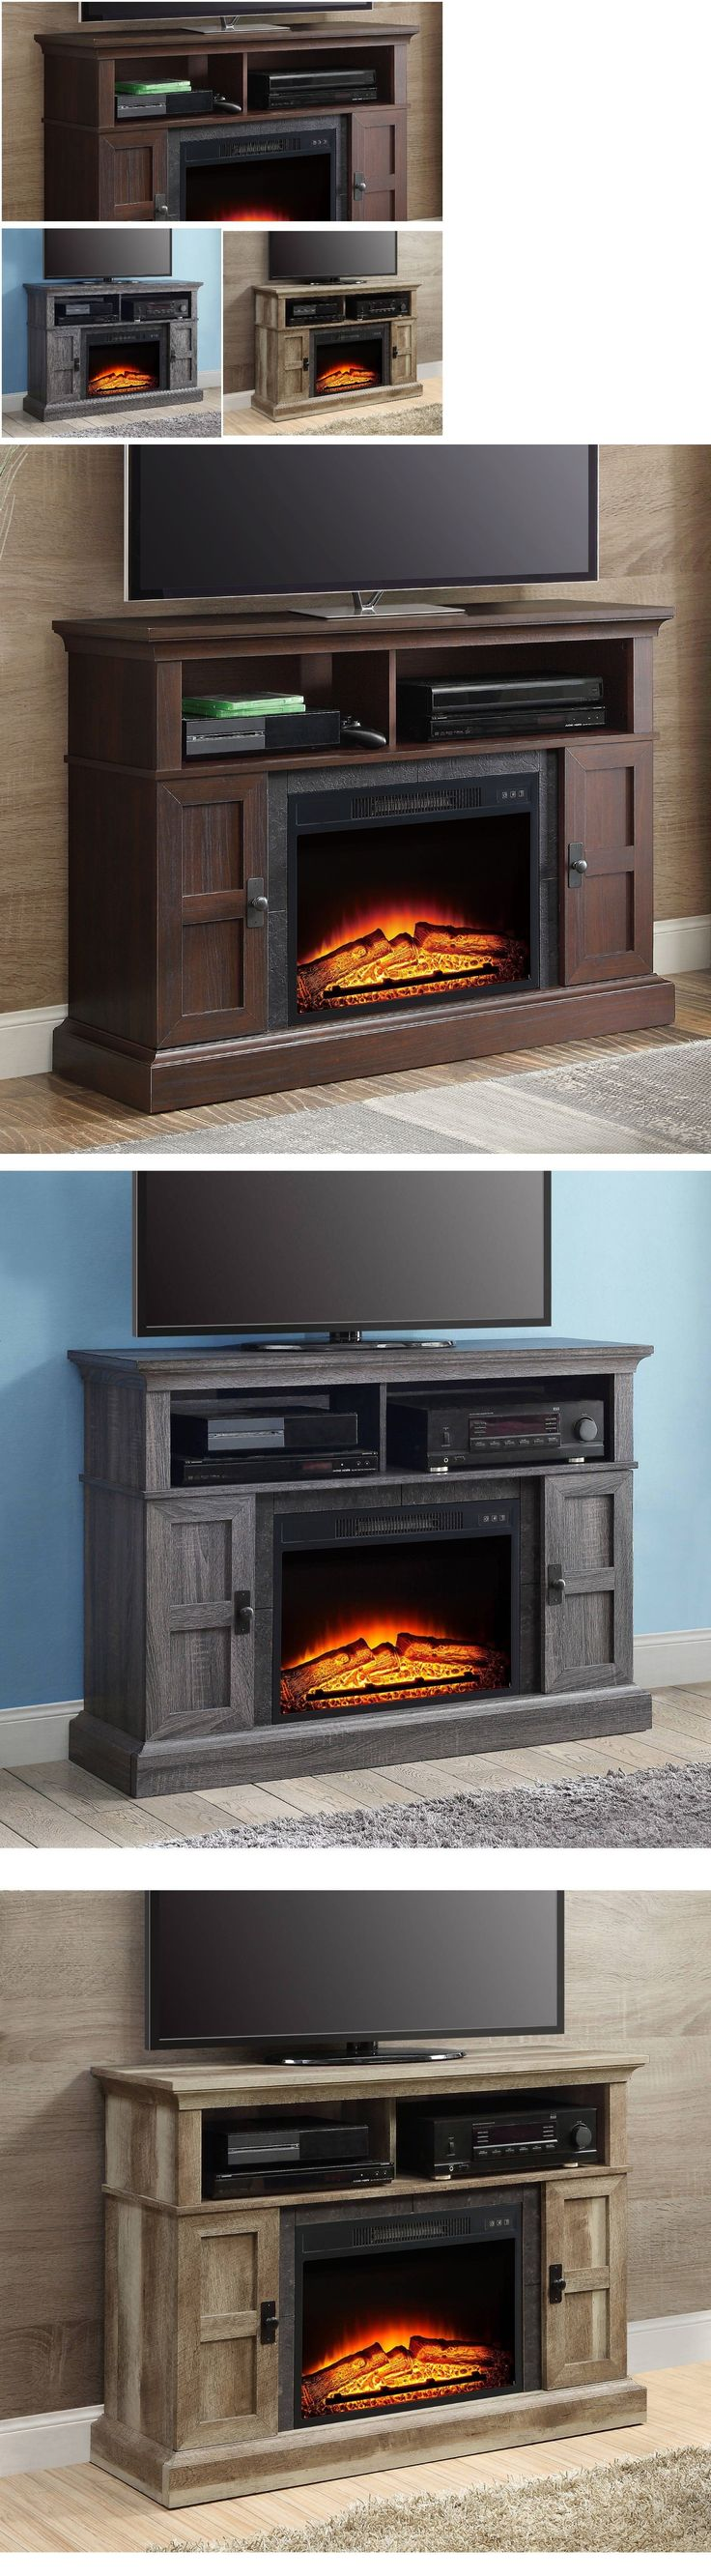 Entertainment Units TV Stands: Media Electric Fireplace Tv Stand 55 Heater Entertainment Center Console Remote -> BUY IT NOW ONLY: $247.95 on eBay!